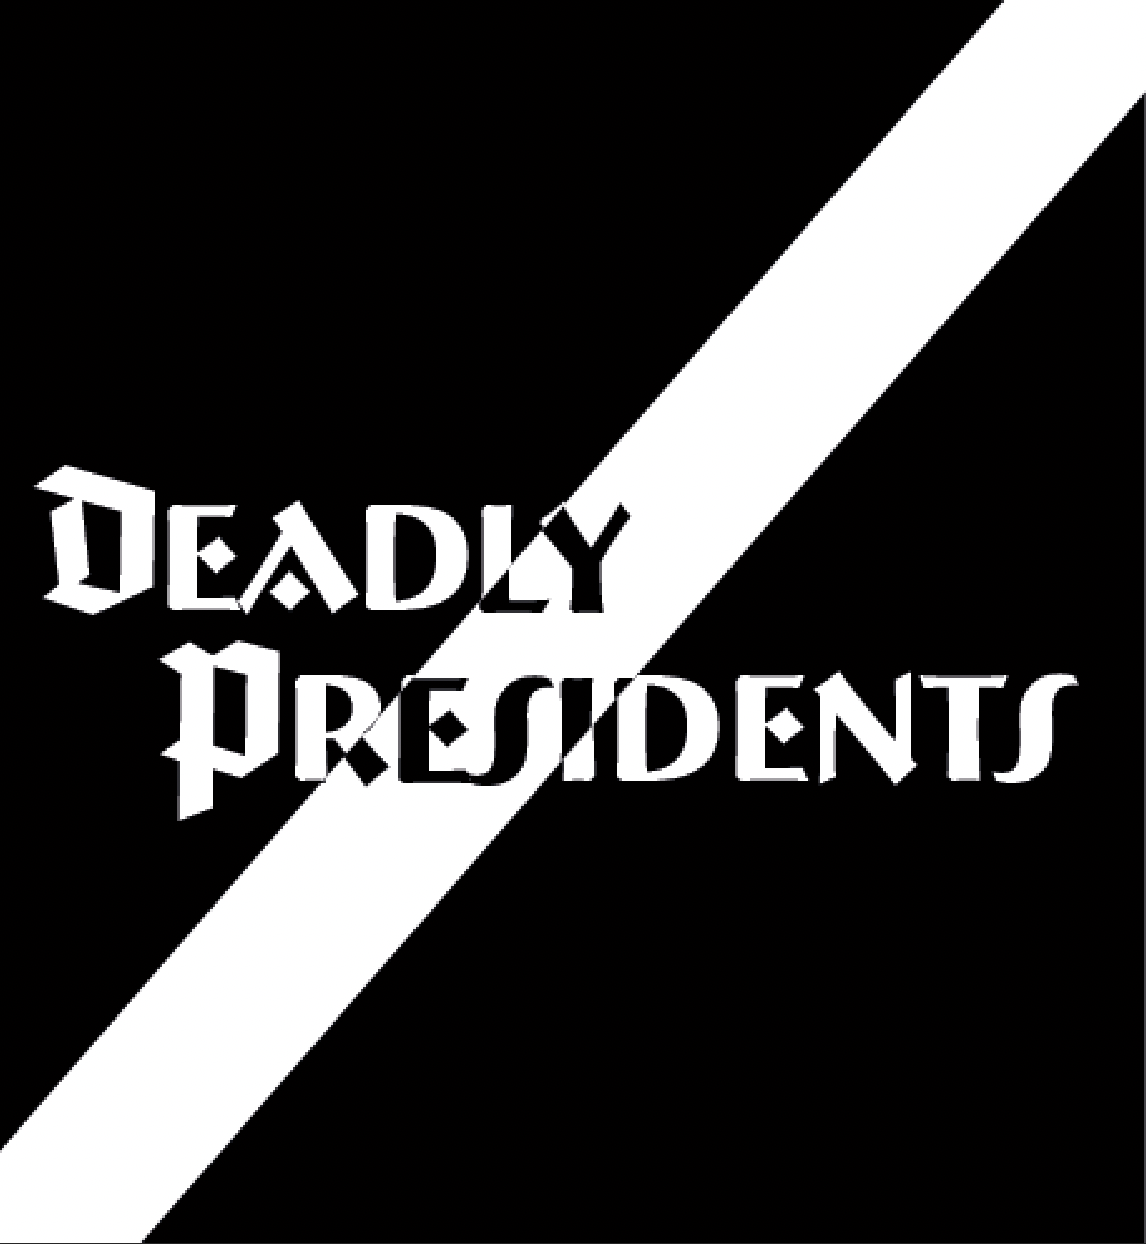 Deadly Presidents